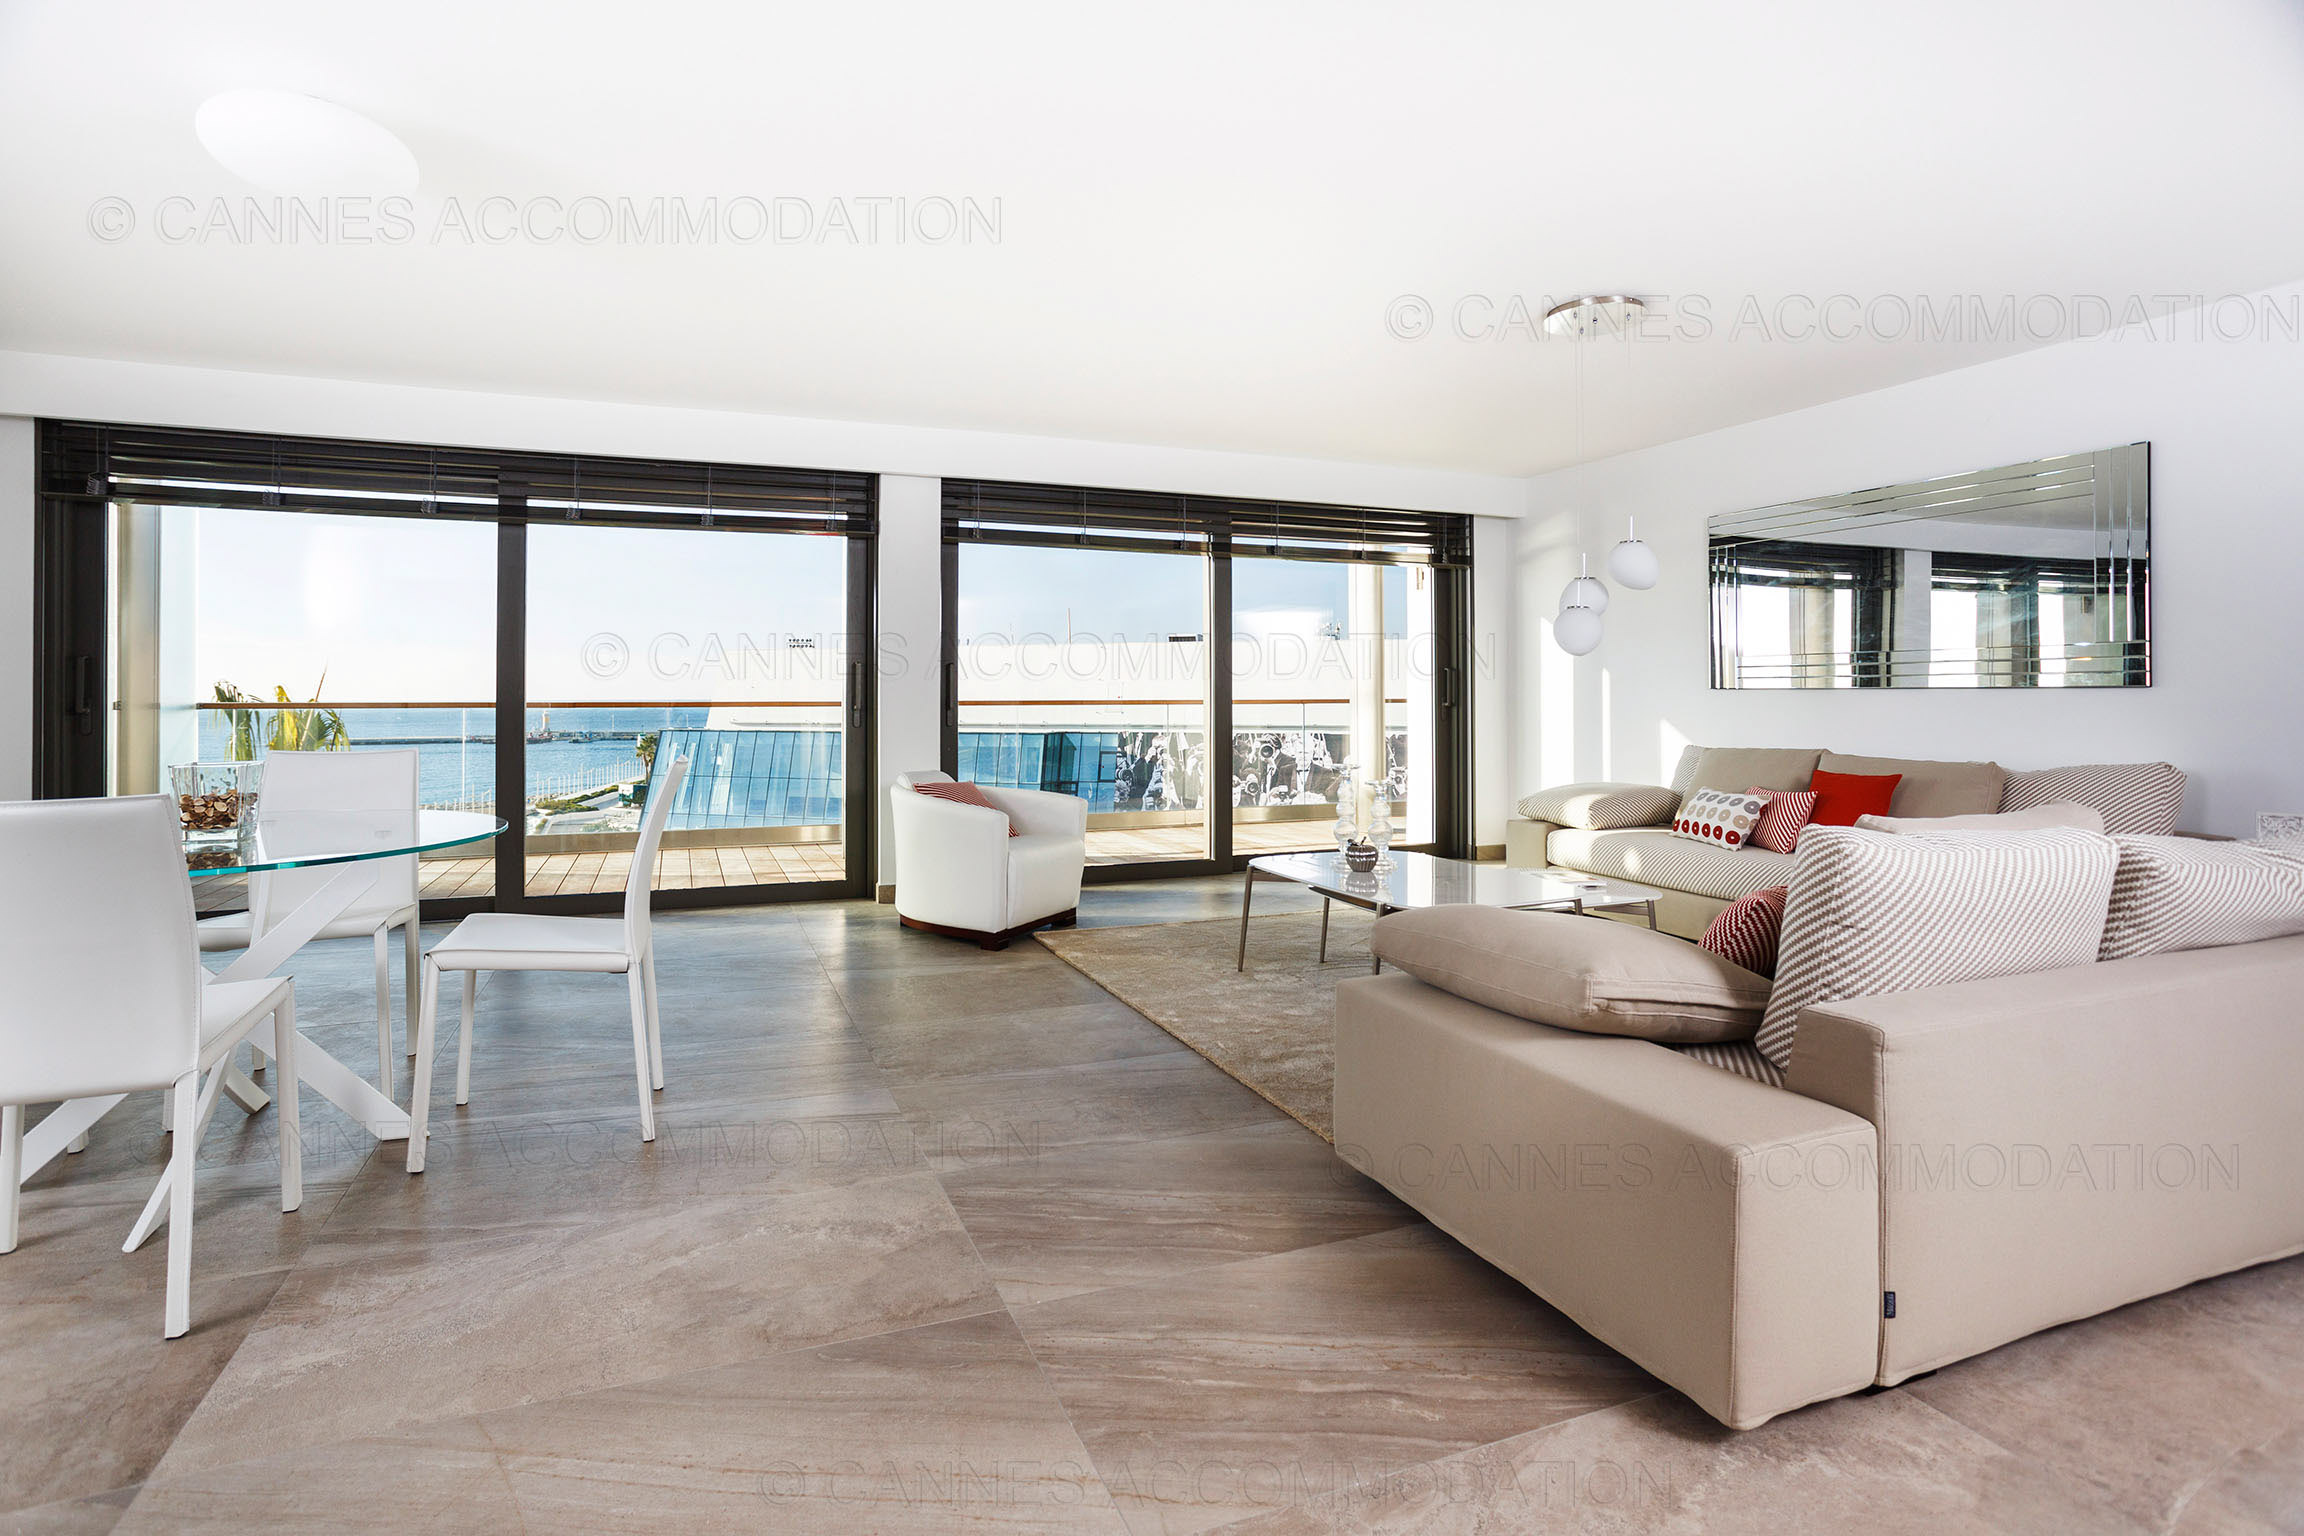 Apartment 2 bedrooms for rent cannes croisette